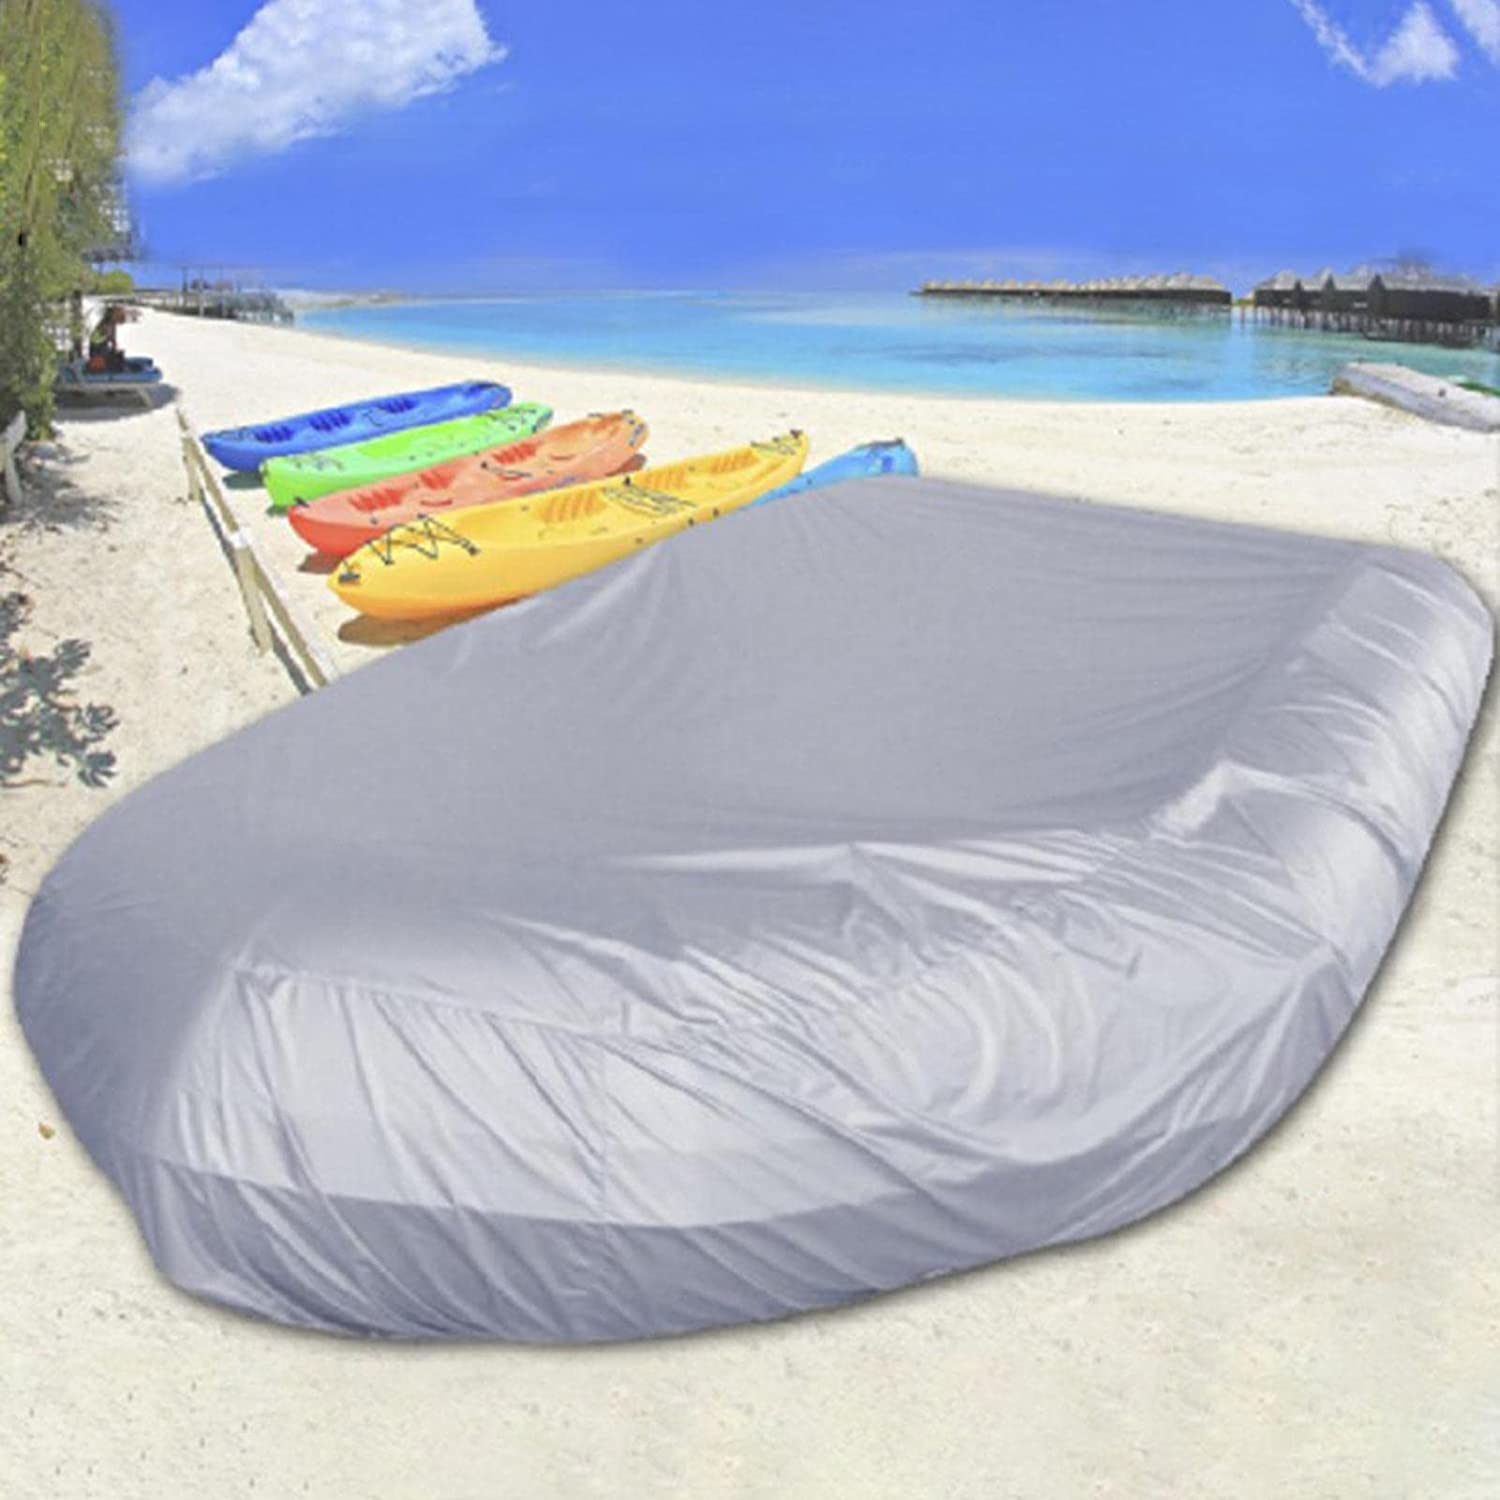 Heavy Discount mail order Duty Boat Cover New color Protector Paddle Waterproof Outdoor B